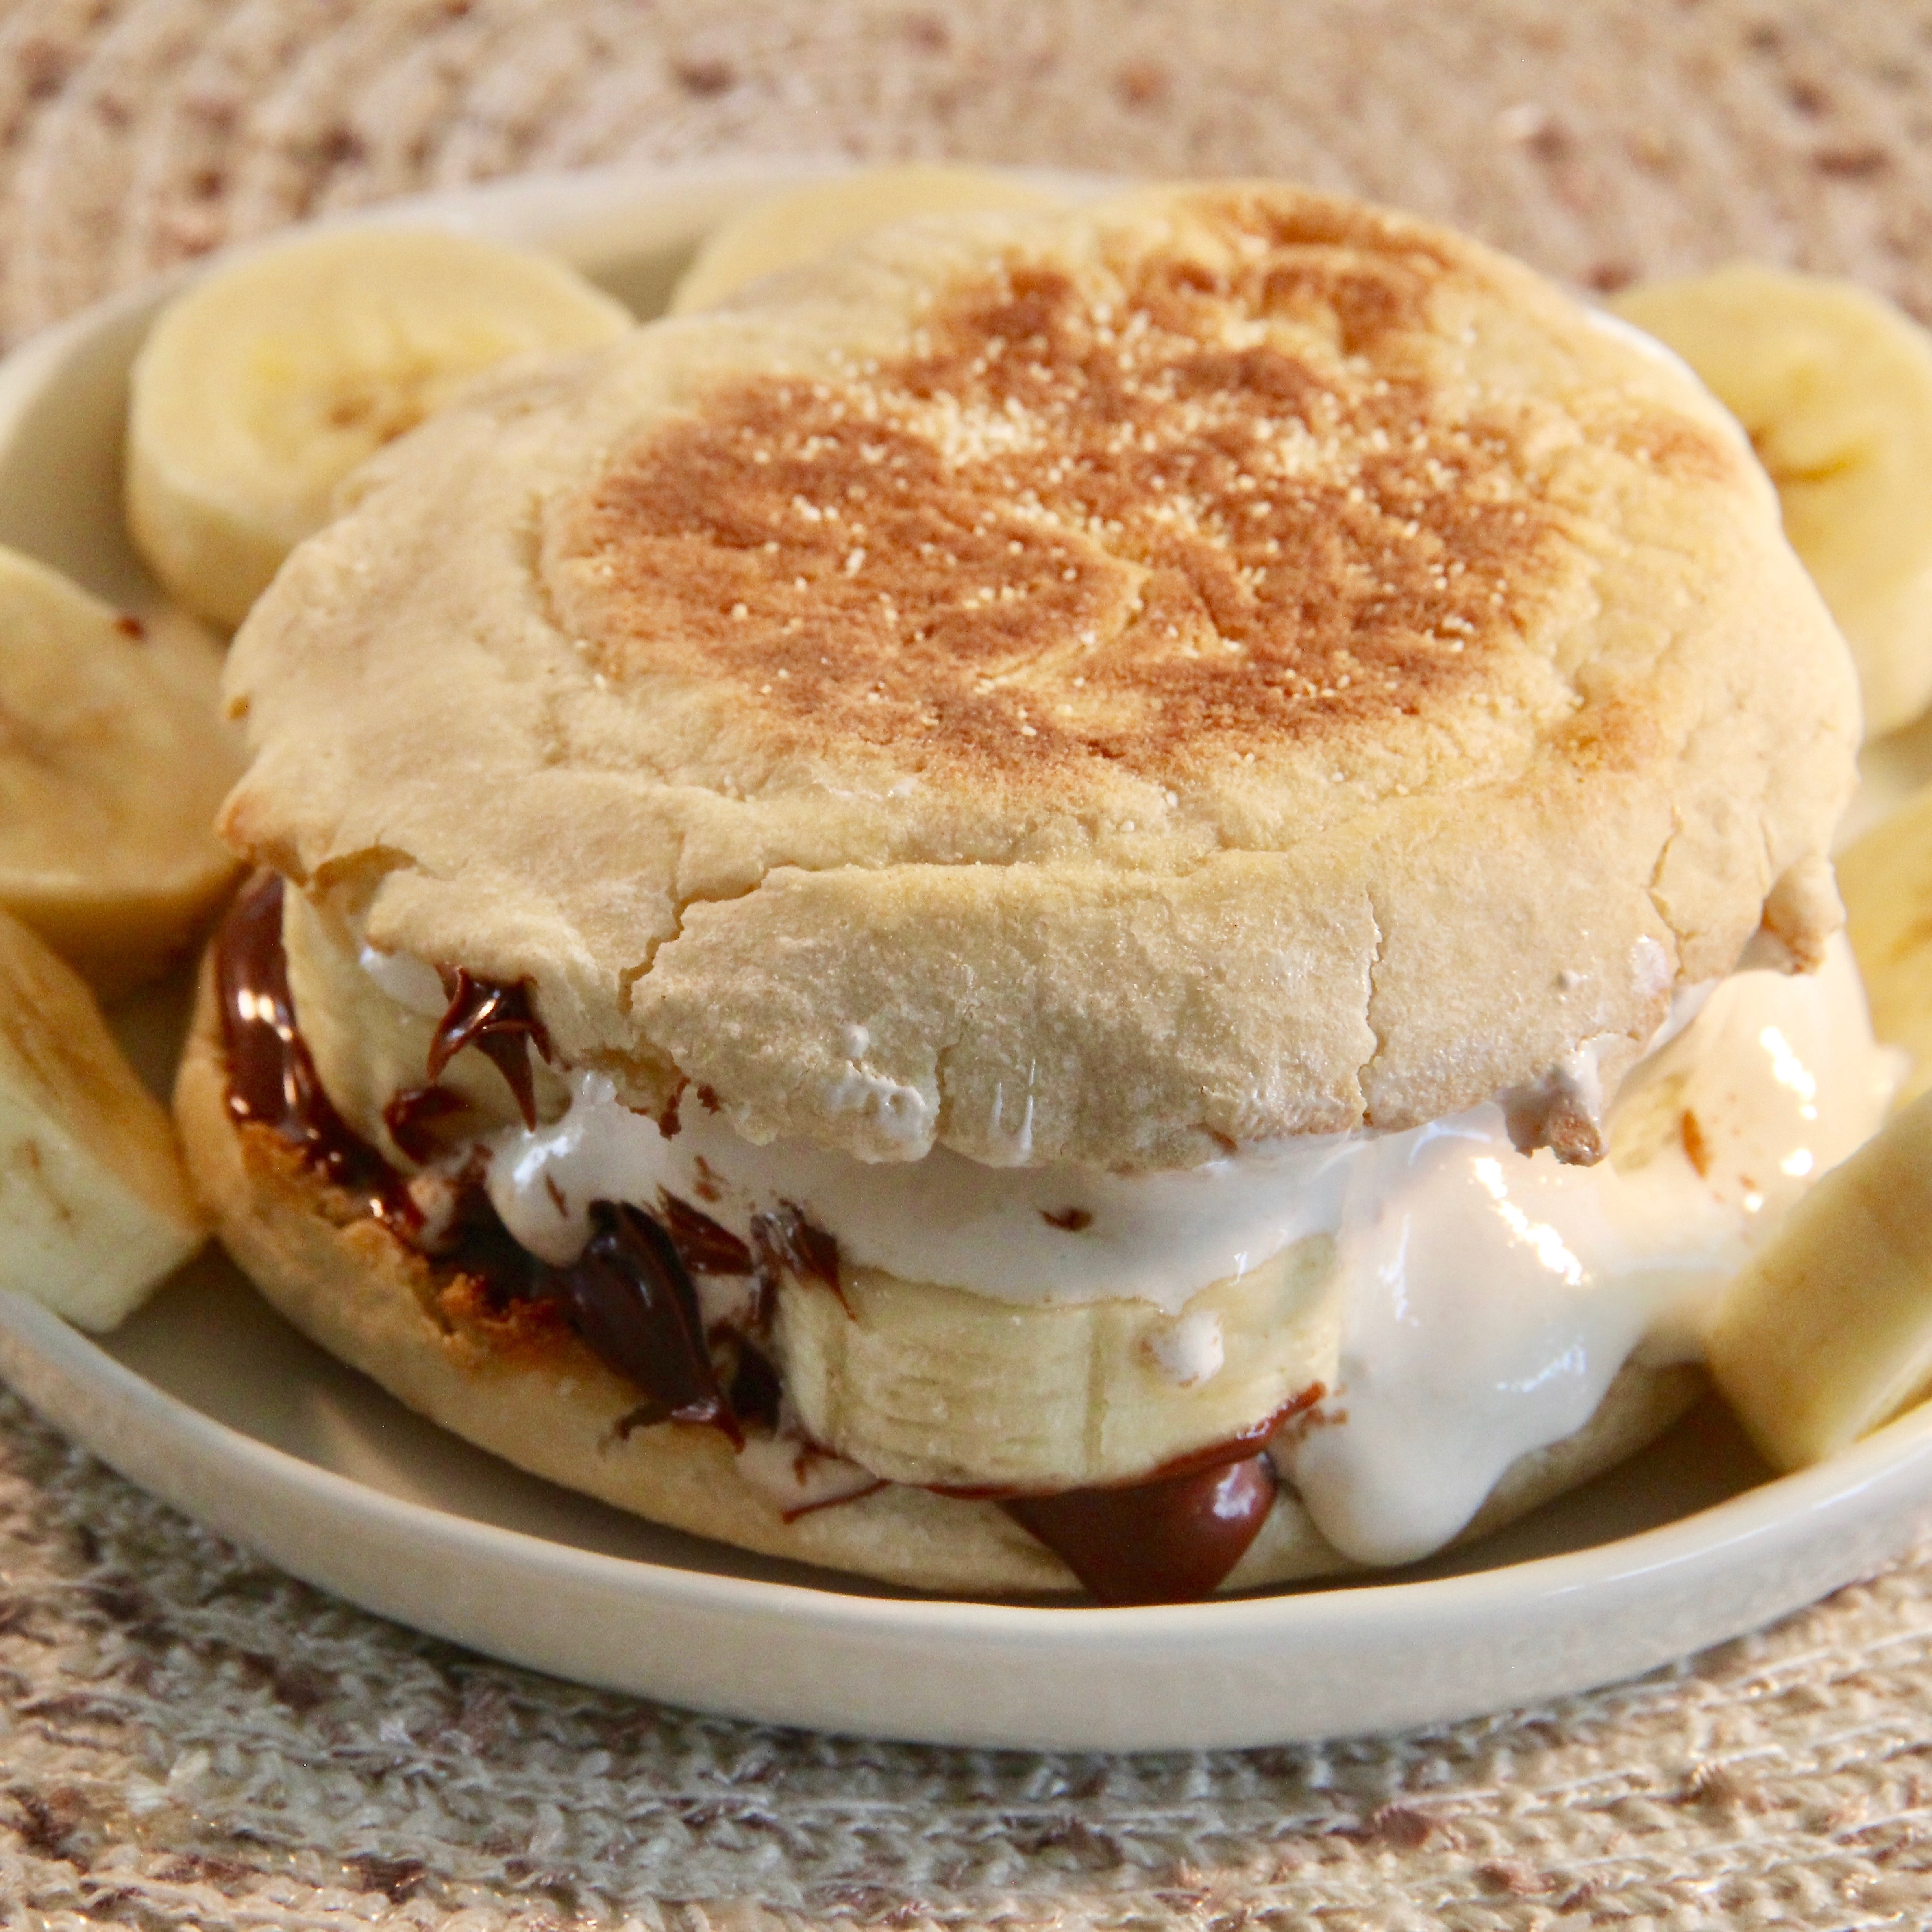 """Breakfast sandwiches don't get easier than this! Slices of banana and schmears of Nutella and marshmallow cream are sandwiched between crisp slabs of toasted English muffin.""""Super easy and delicious sandwich to make for breakfast or a snack,"""" says alycia."""